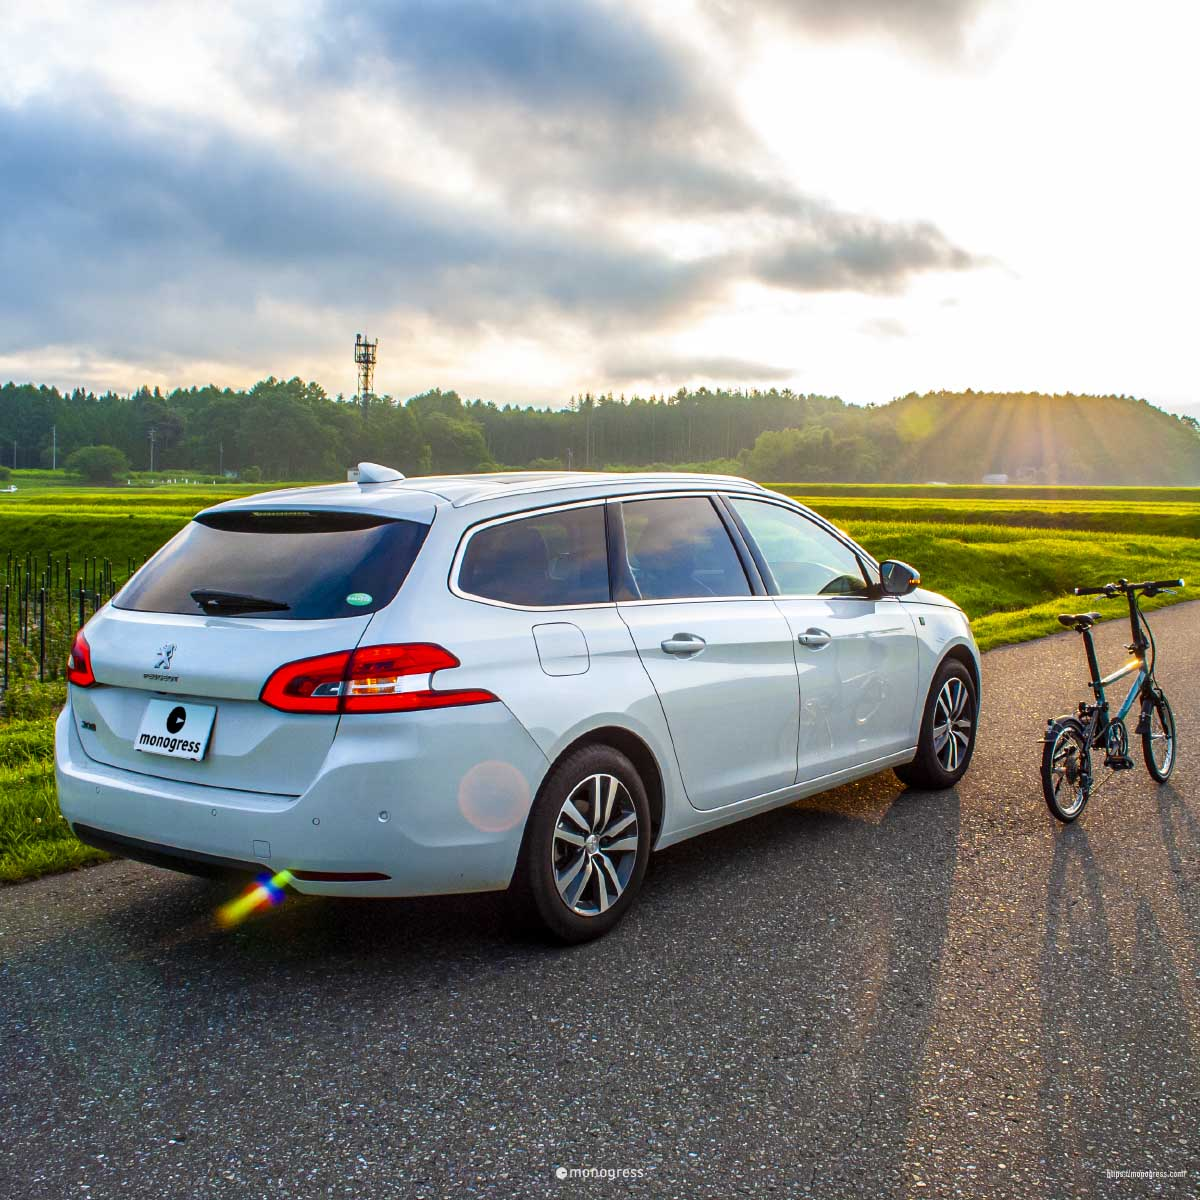 Peugeot-308SW and Tyrell IVE